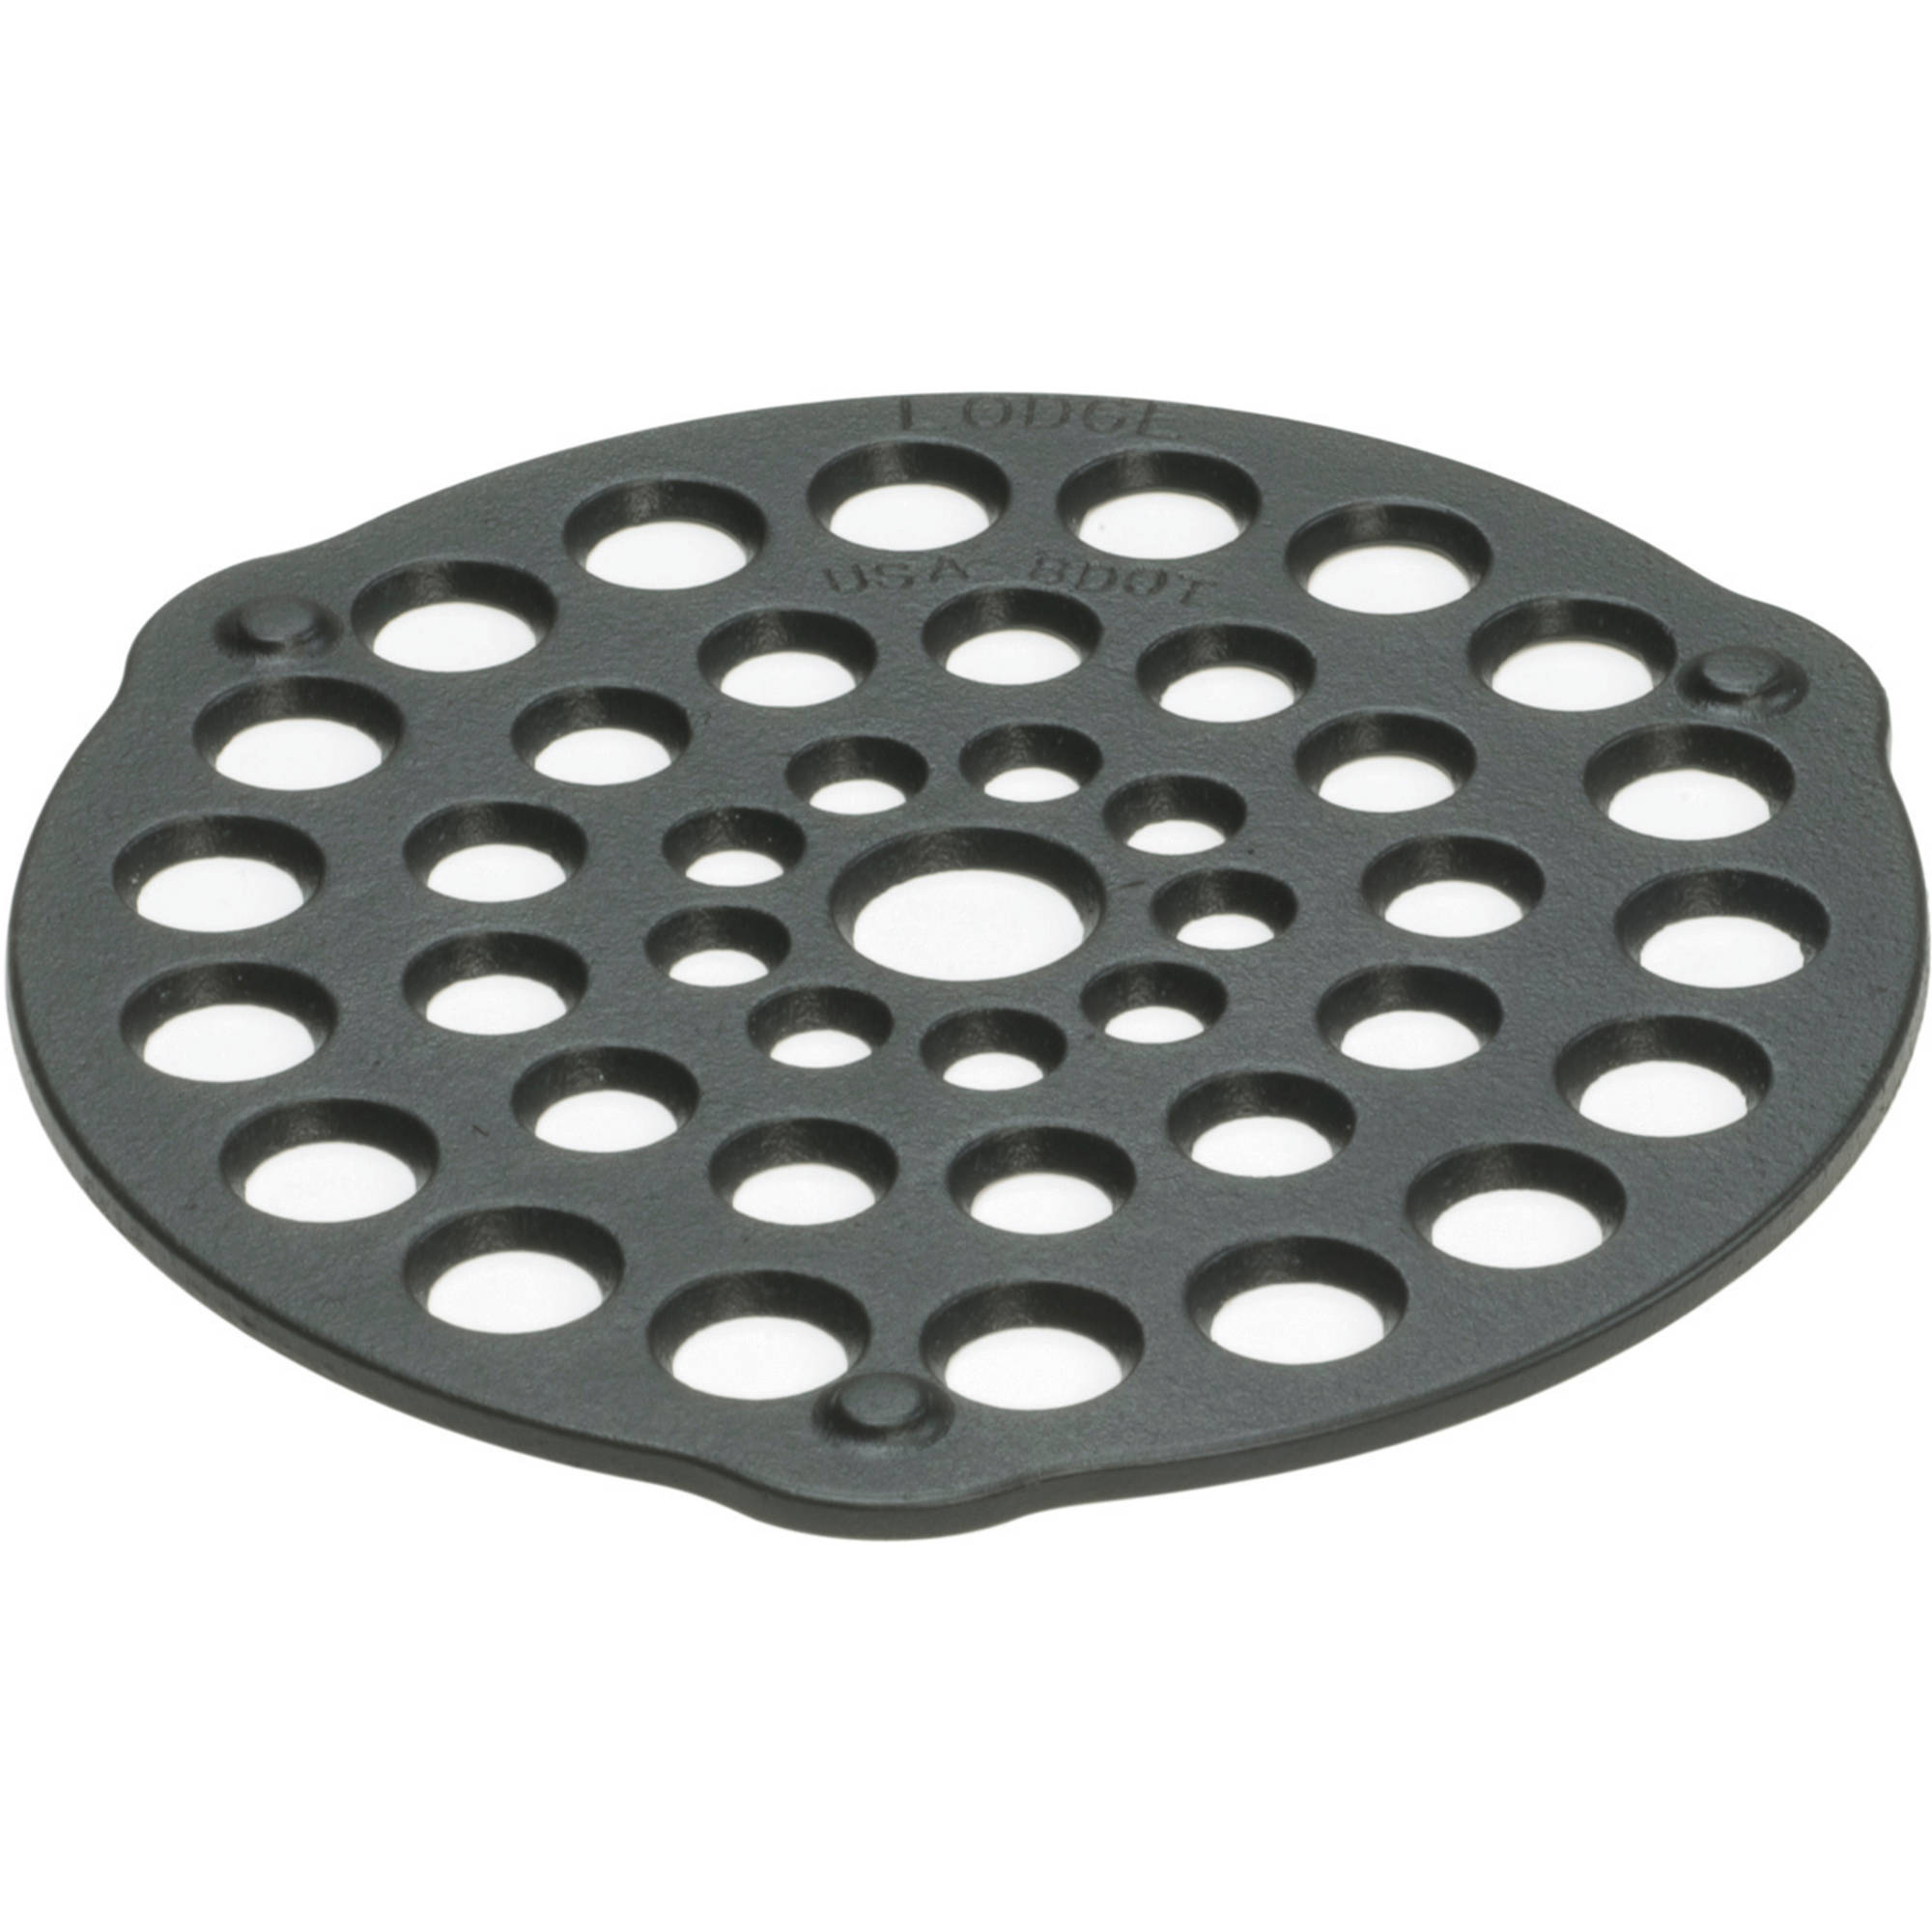 Lodge Logic Cast Iron Trivet